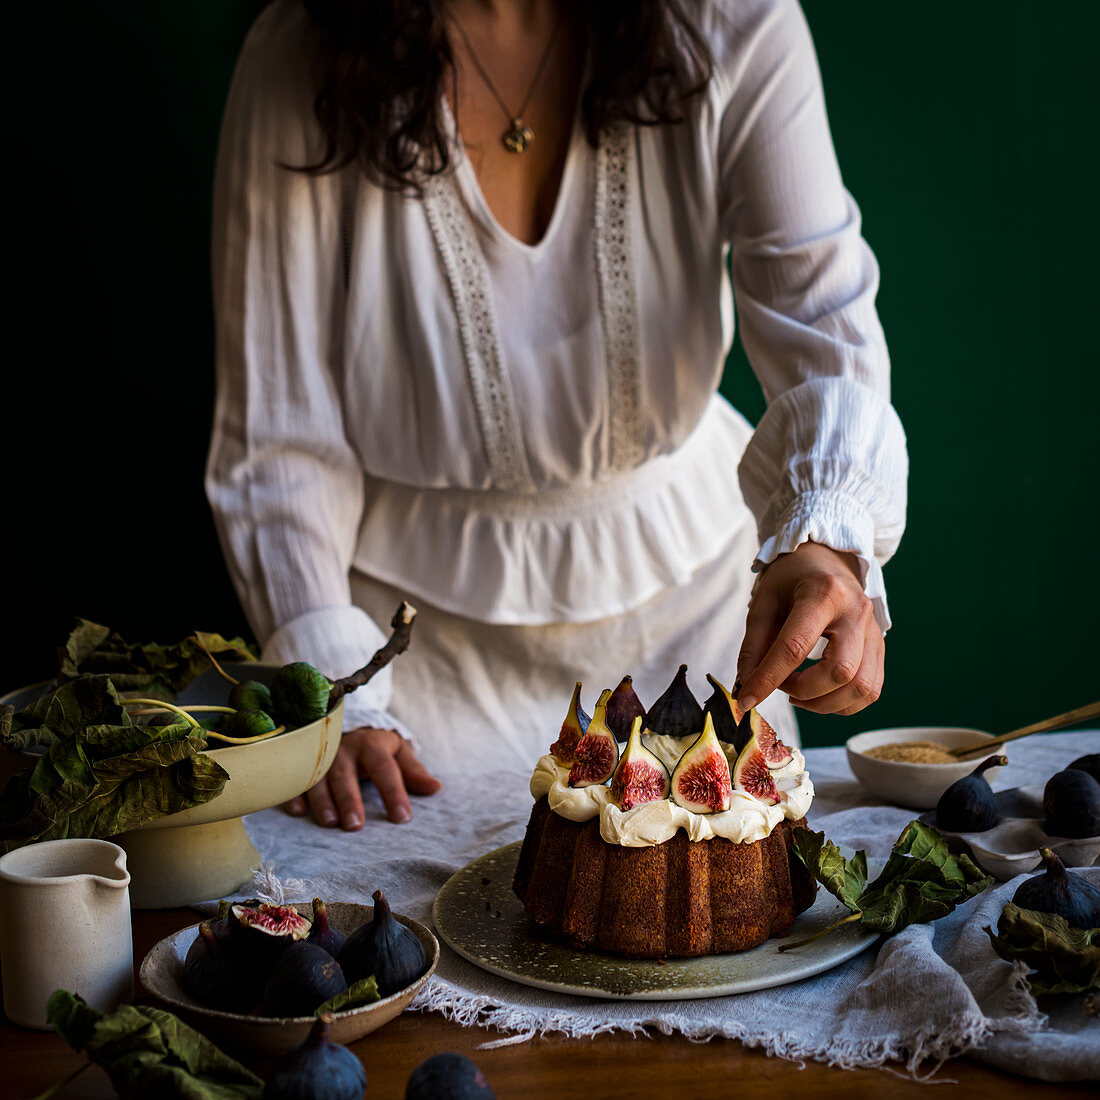 Fig Cake with figs and fig leaves